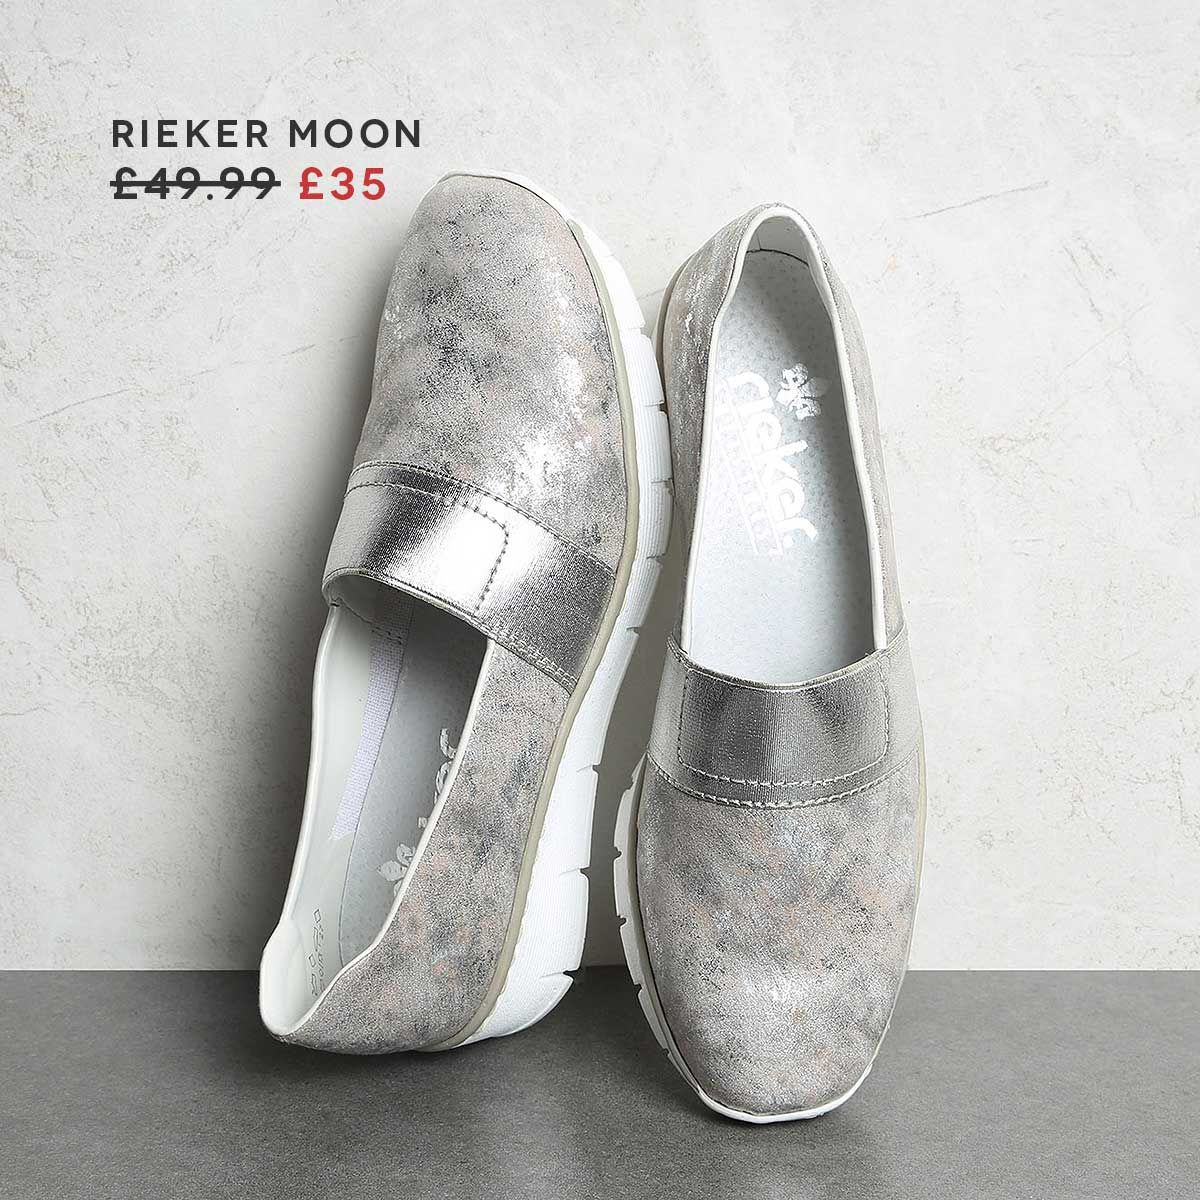 Refresh your wardrobe in a metallic pair of Rieker Moon. Now x1whd